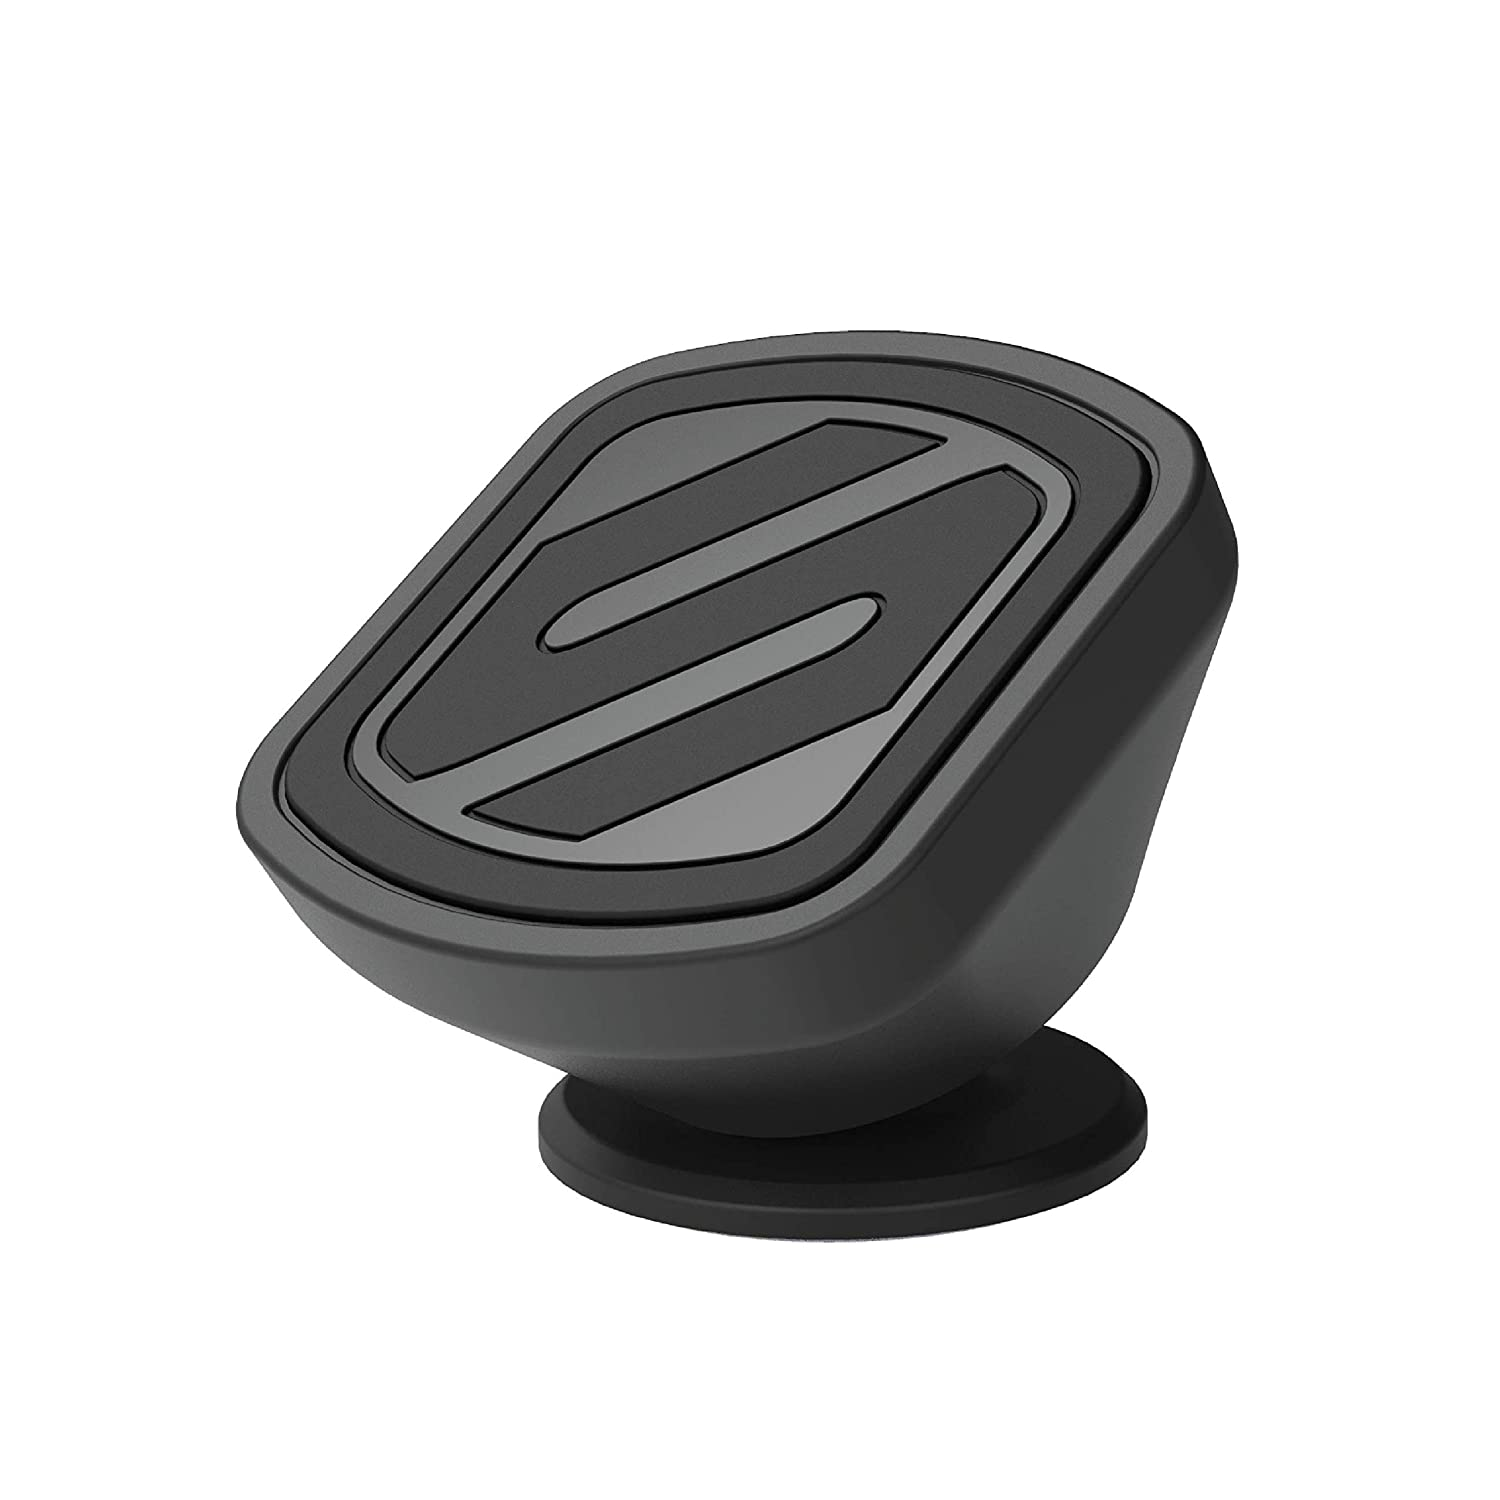 SCOSCHE MMSD-XCES0 MagicMount Select Magnetic Phone/GPS Vertical Dash Mini Mount for the Car, Home or Office